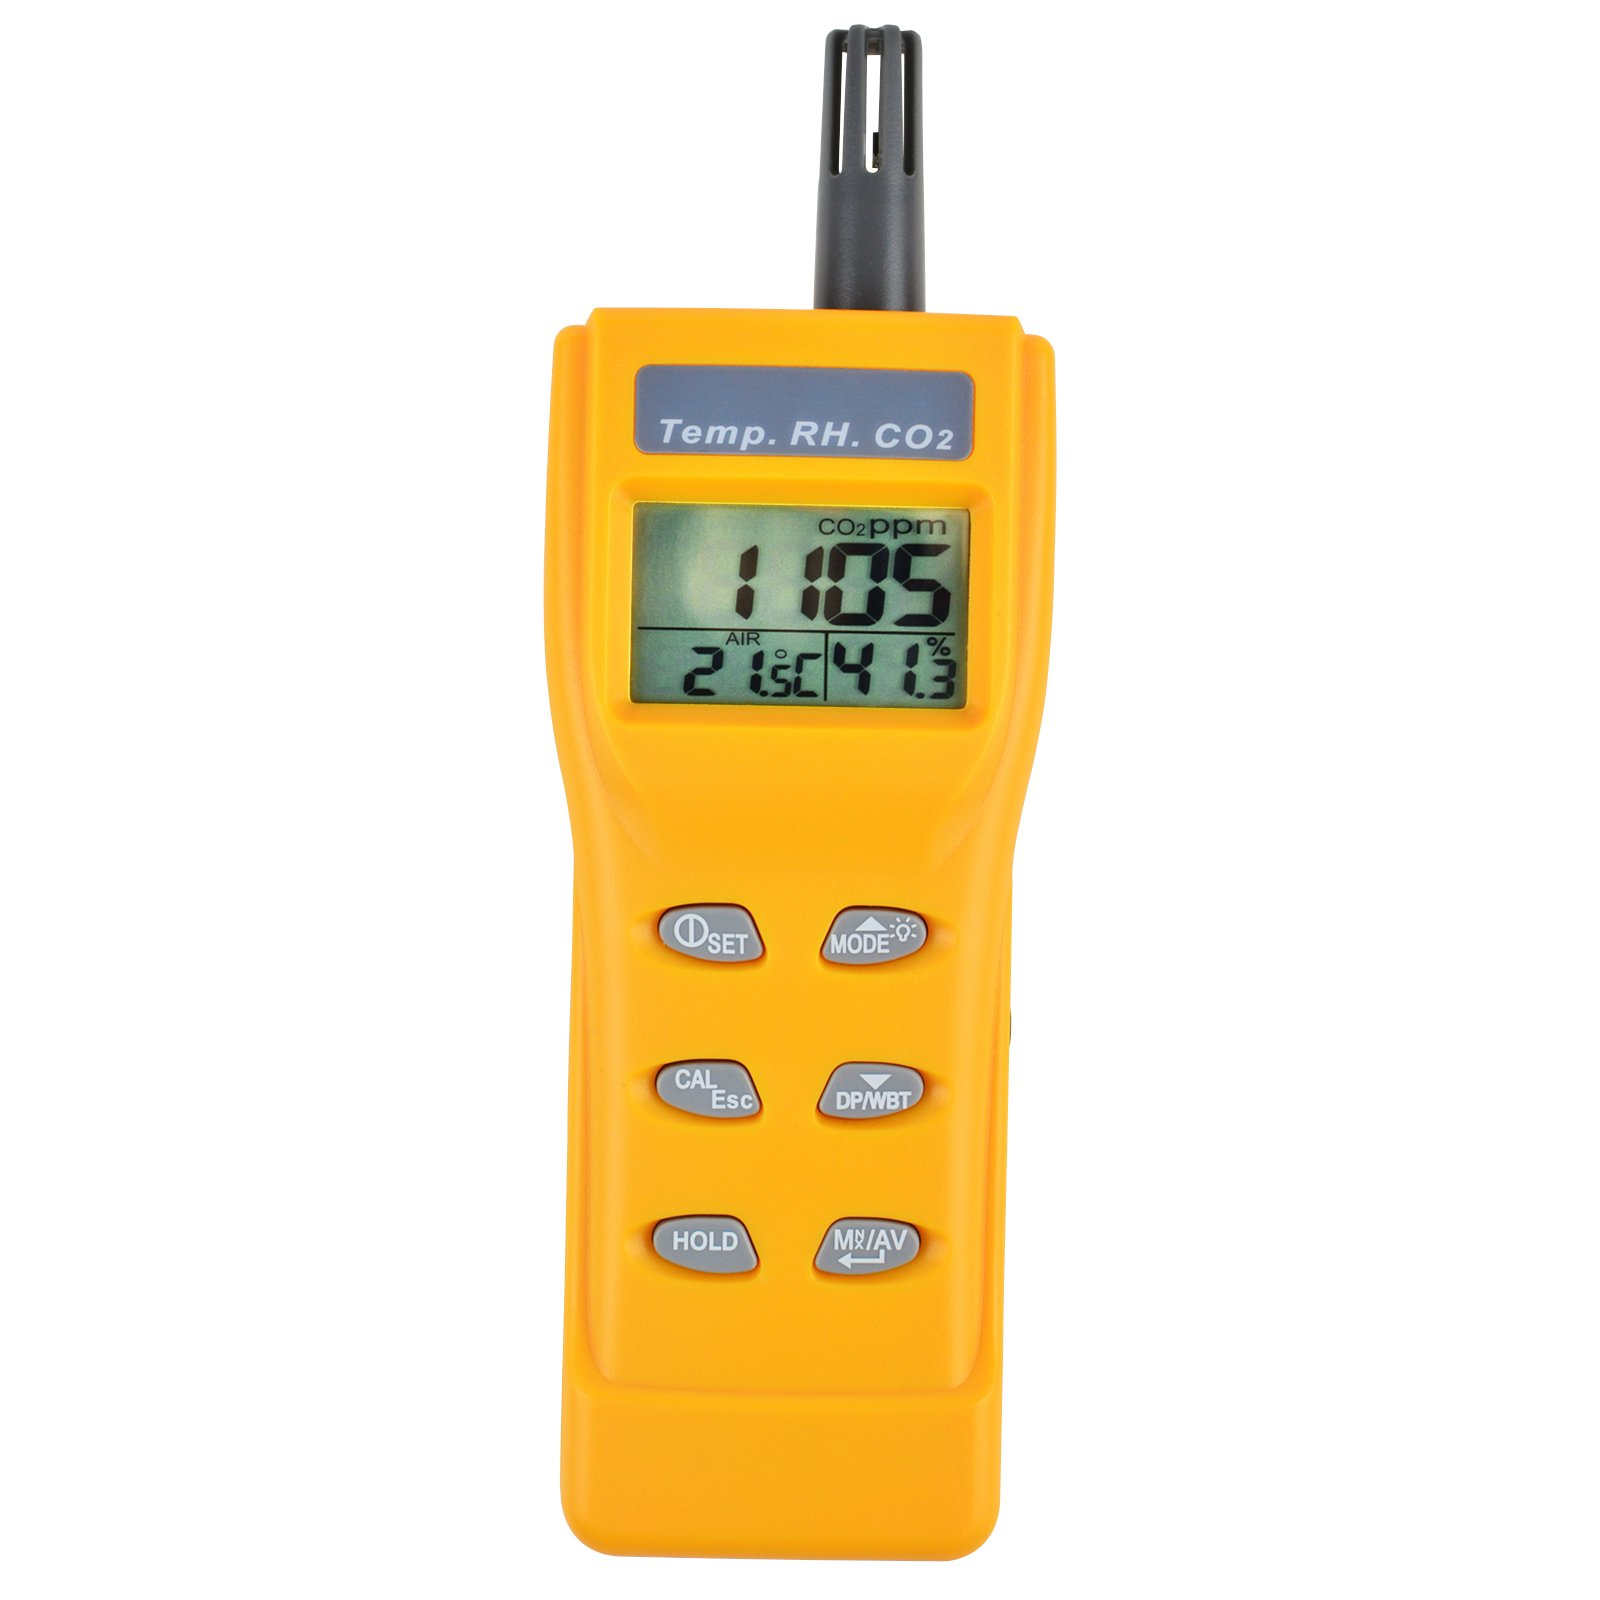 Digital Indoor Air Quality 9999ppm Temperature Humidity NDIR Sensor Carbon Dioxide CO2 Wet Bulb (WB) Dew Point (DP) CO2 Air Monitor Tester Indoor Air Quality (IAQ) Diagnosis by Gain Express